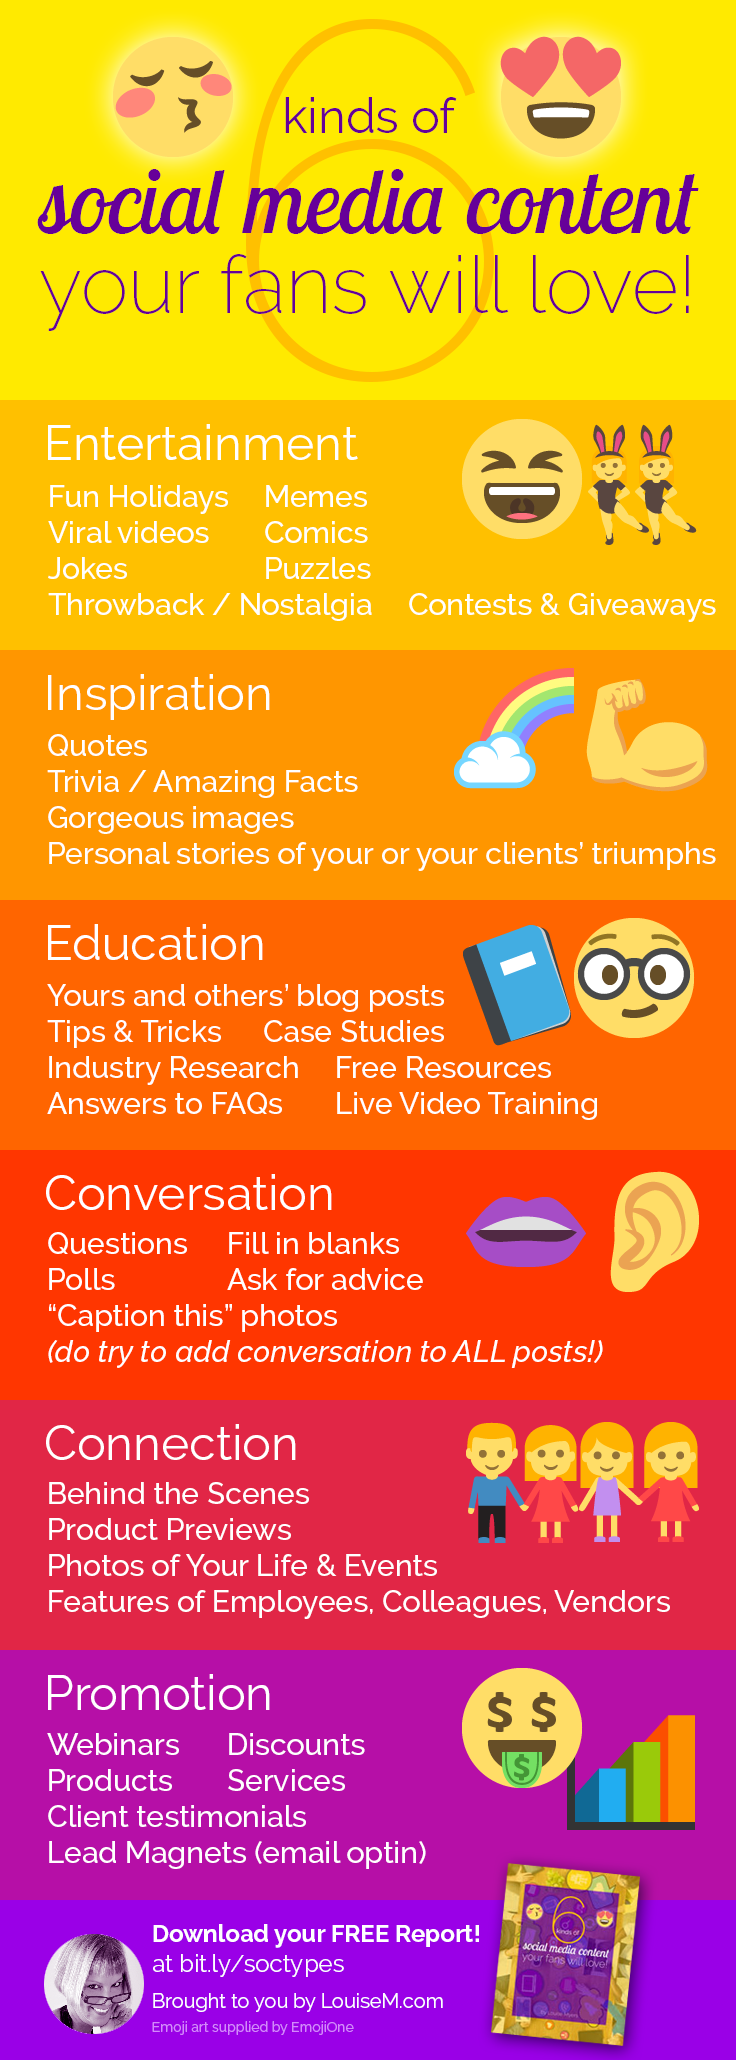 social-media-content-categories-infographic.png